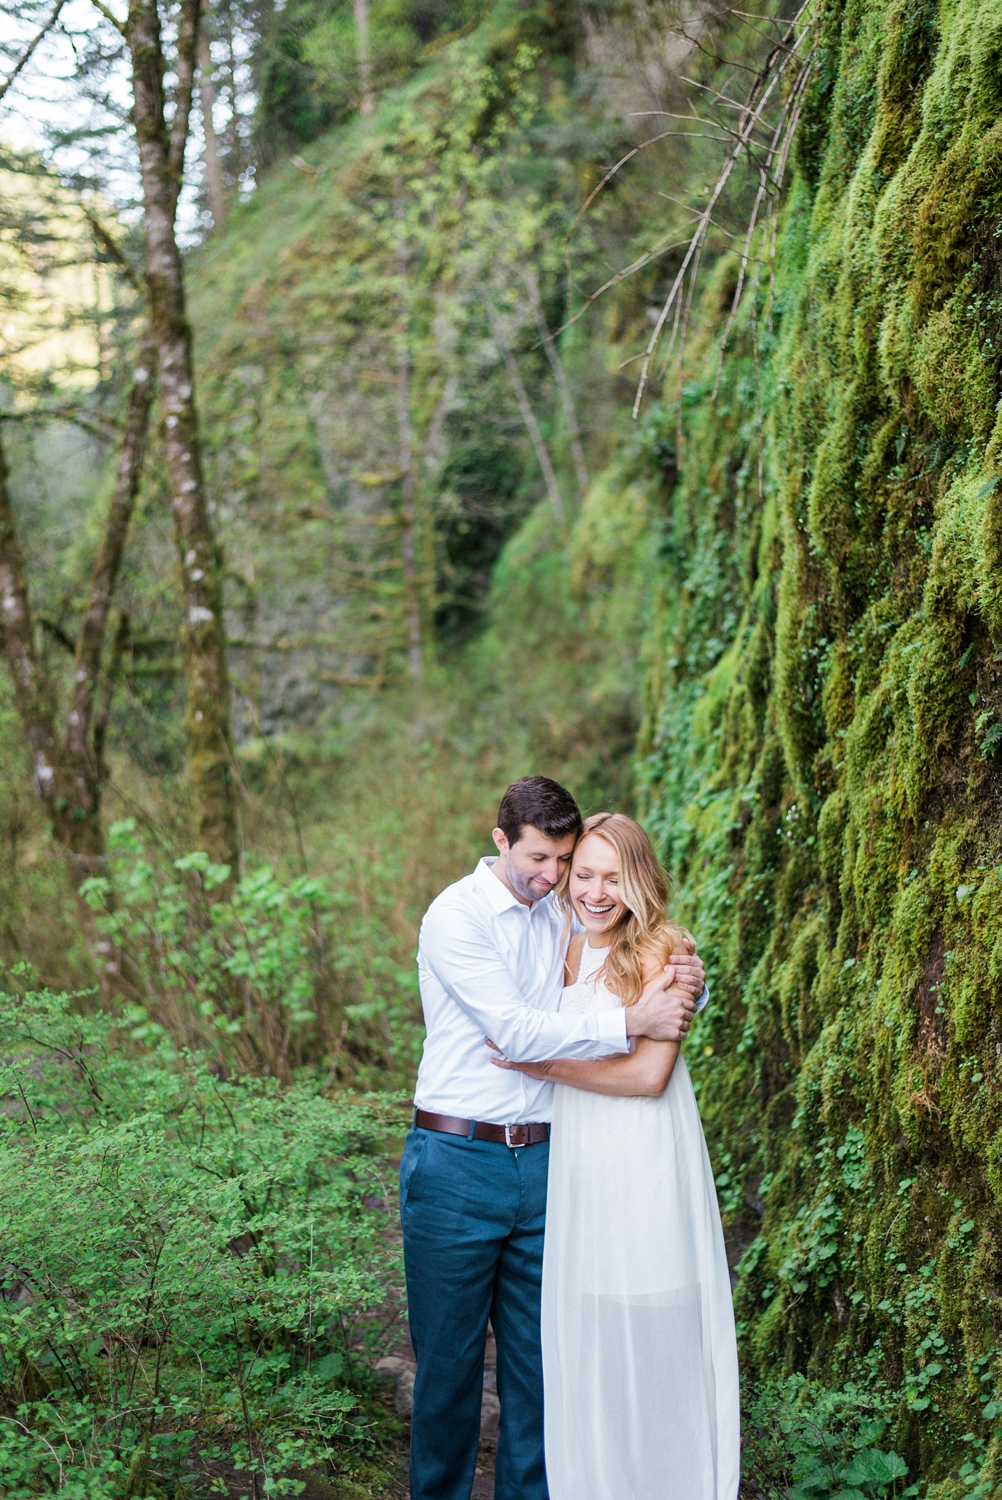 portland-engagement-columbia-river-gorge-oneonta-latourell-waterfall-shelley-marie-photo-117_cr.jpg